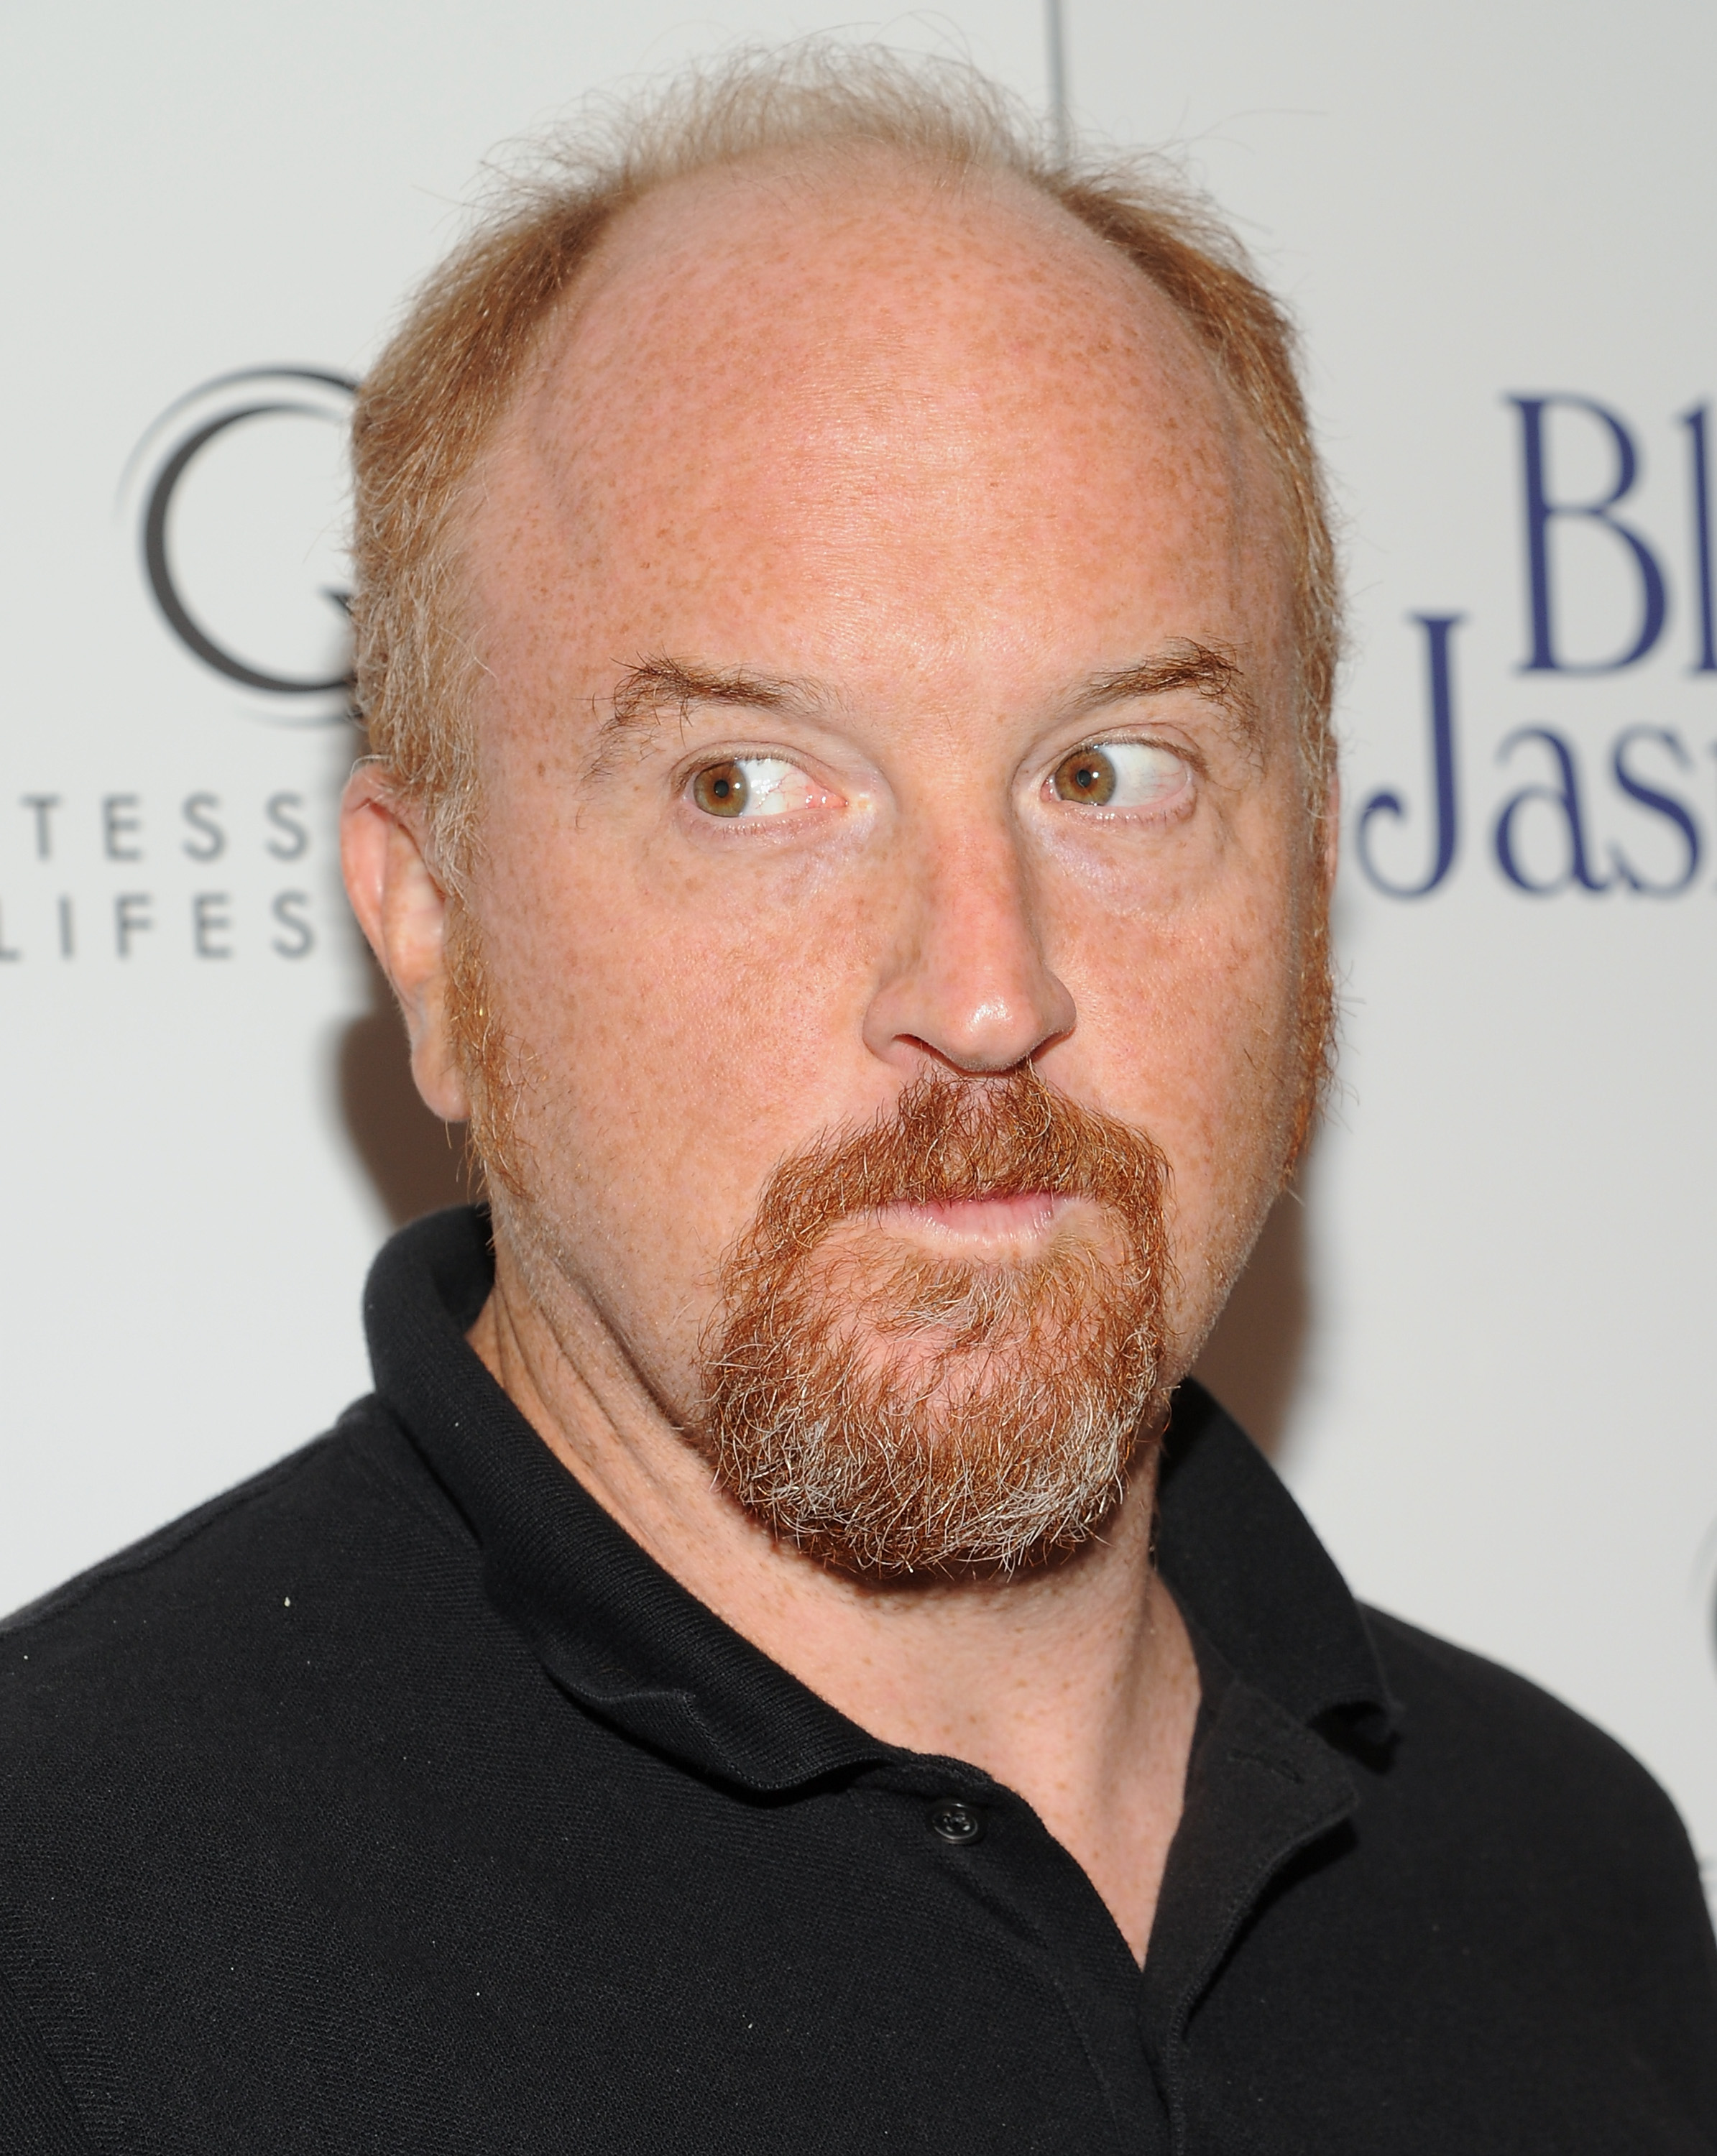 Louis C.K. attends the premiere of  Blue Jasmine  at the Museum of Modern Art on July 22, 2013 in New York City.